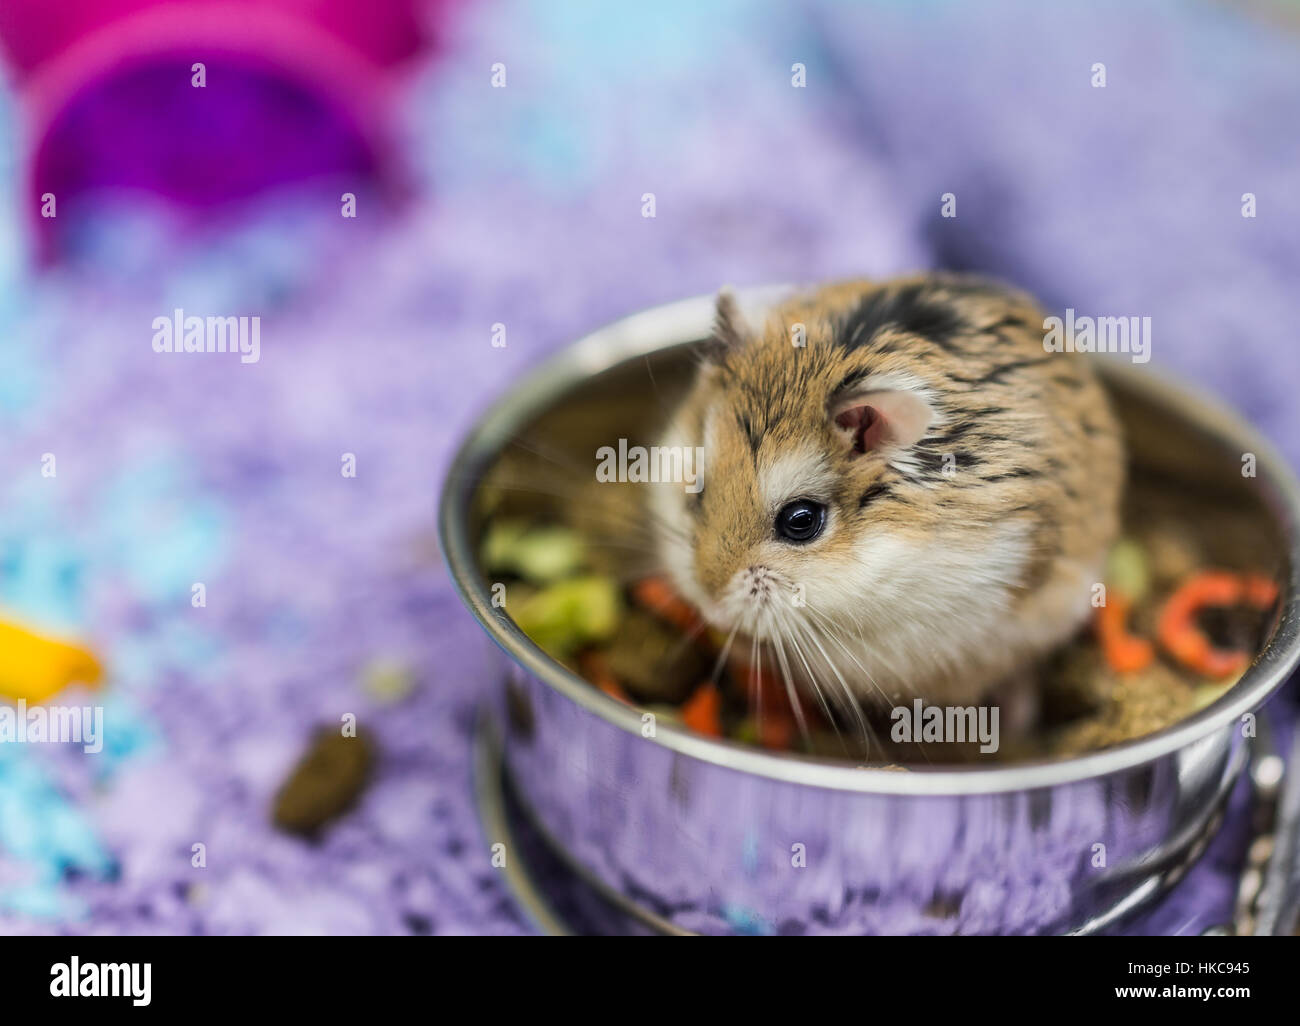 Hamster Eating Stock Photos & Hamster Eating Stock Images